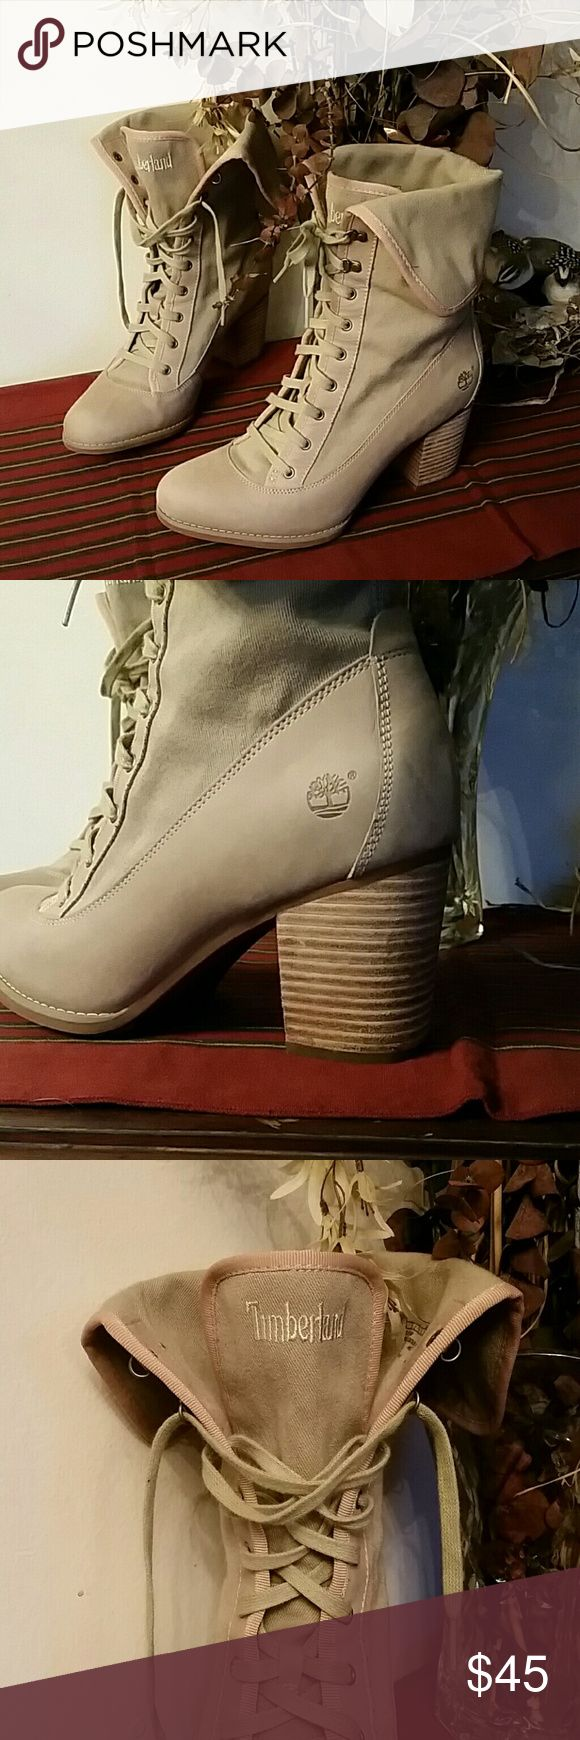 "😍Timberlands❤ ❤NWOT😍 Women's SIZE 9 ❤Khaki Army tan colored leather & canvas lace up heeled combat style boots with 3"" Heel by Timberland😍❤😍 Timberland Shoes Combat & Moto Boots"